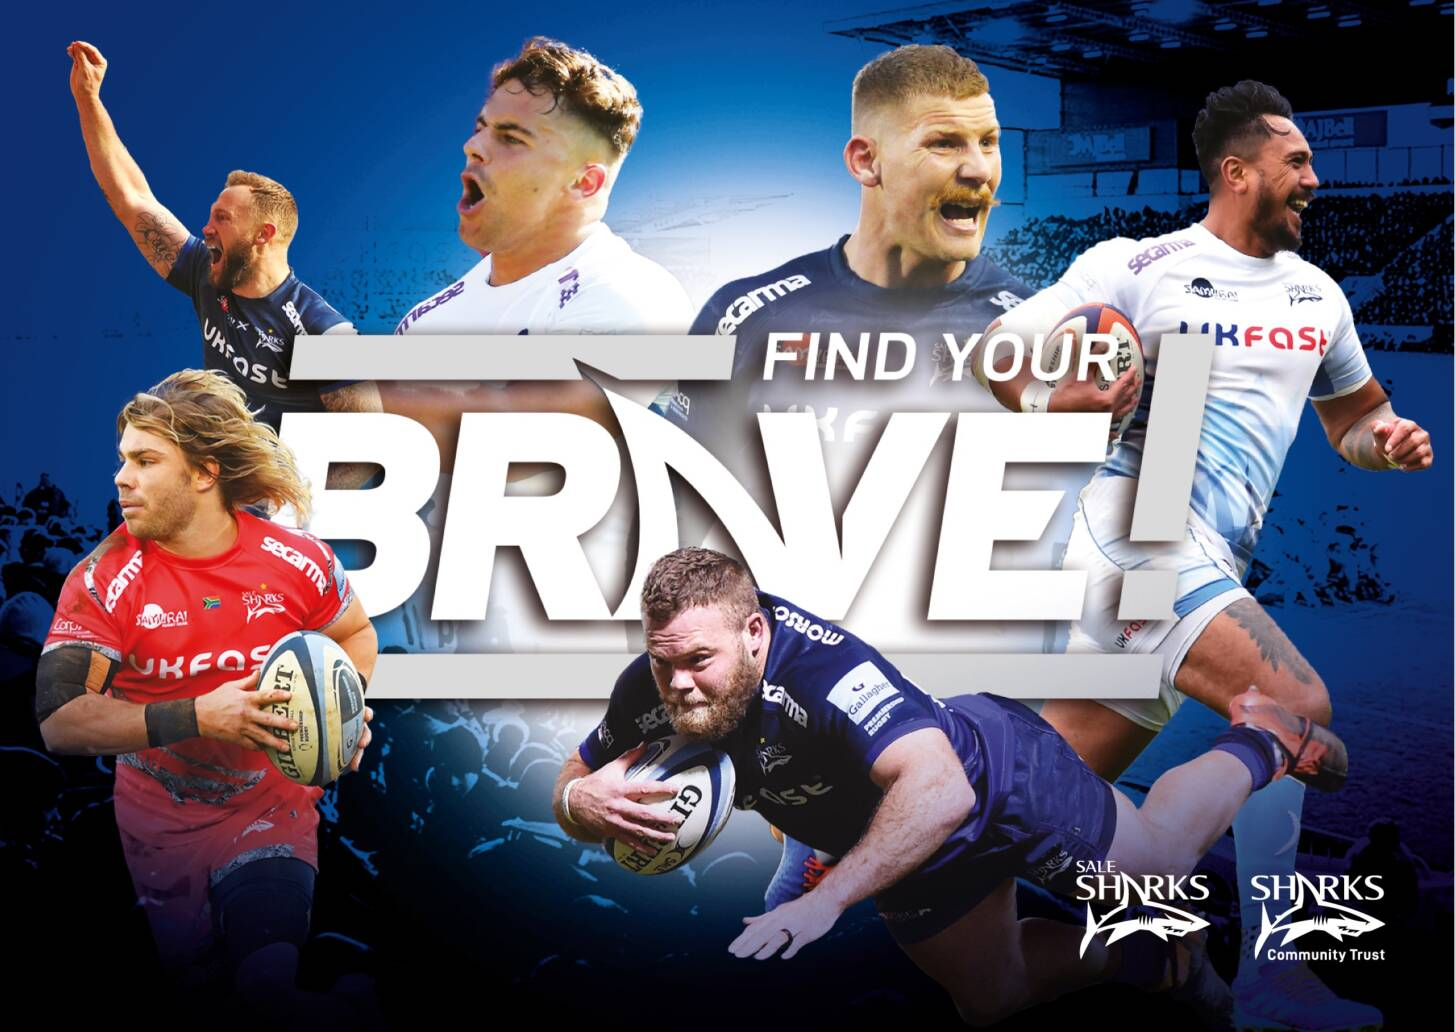 Sale Sharks To Help Young People Find Their Brave